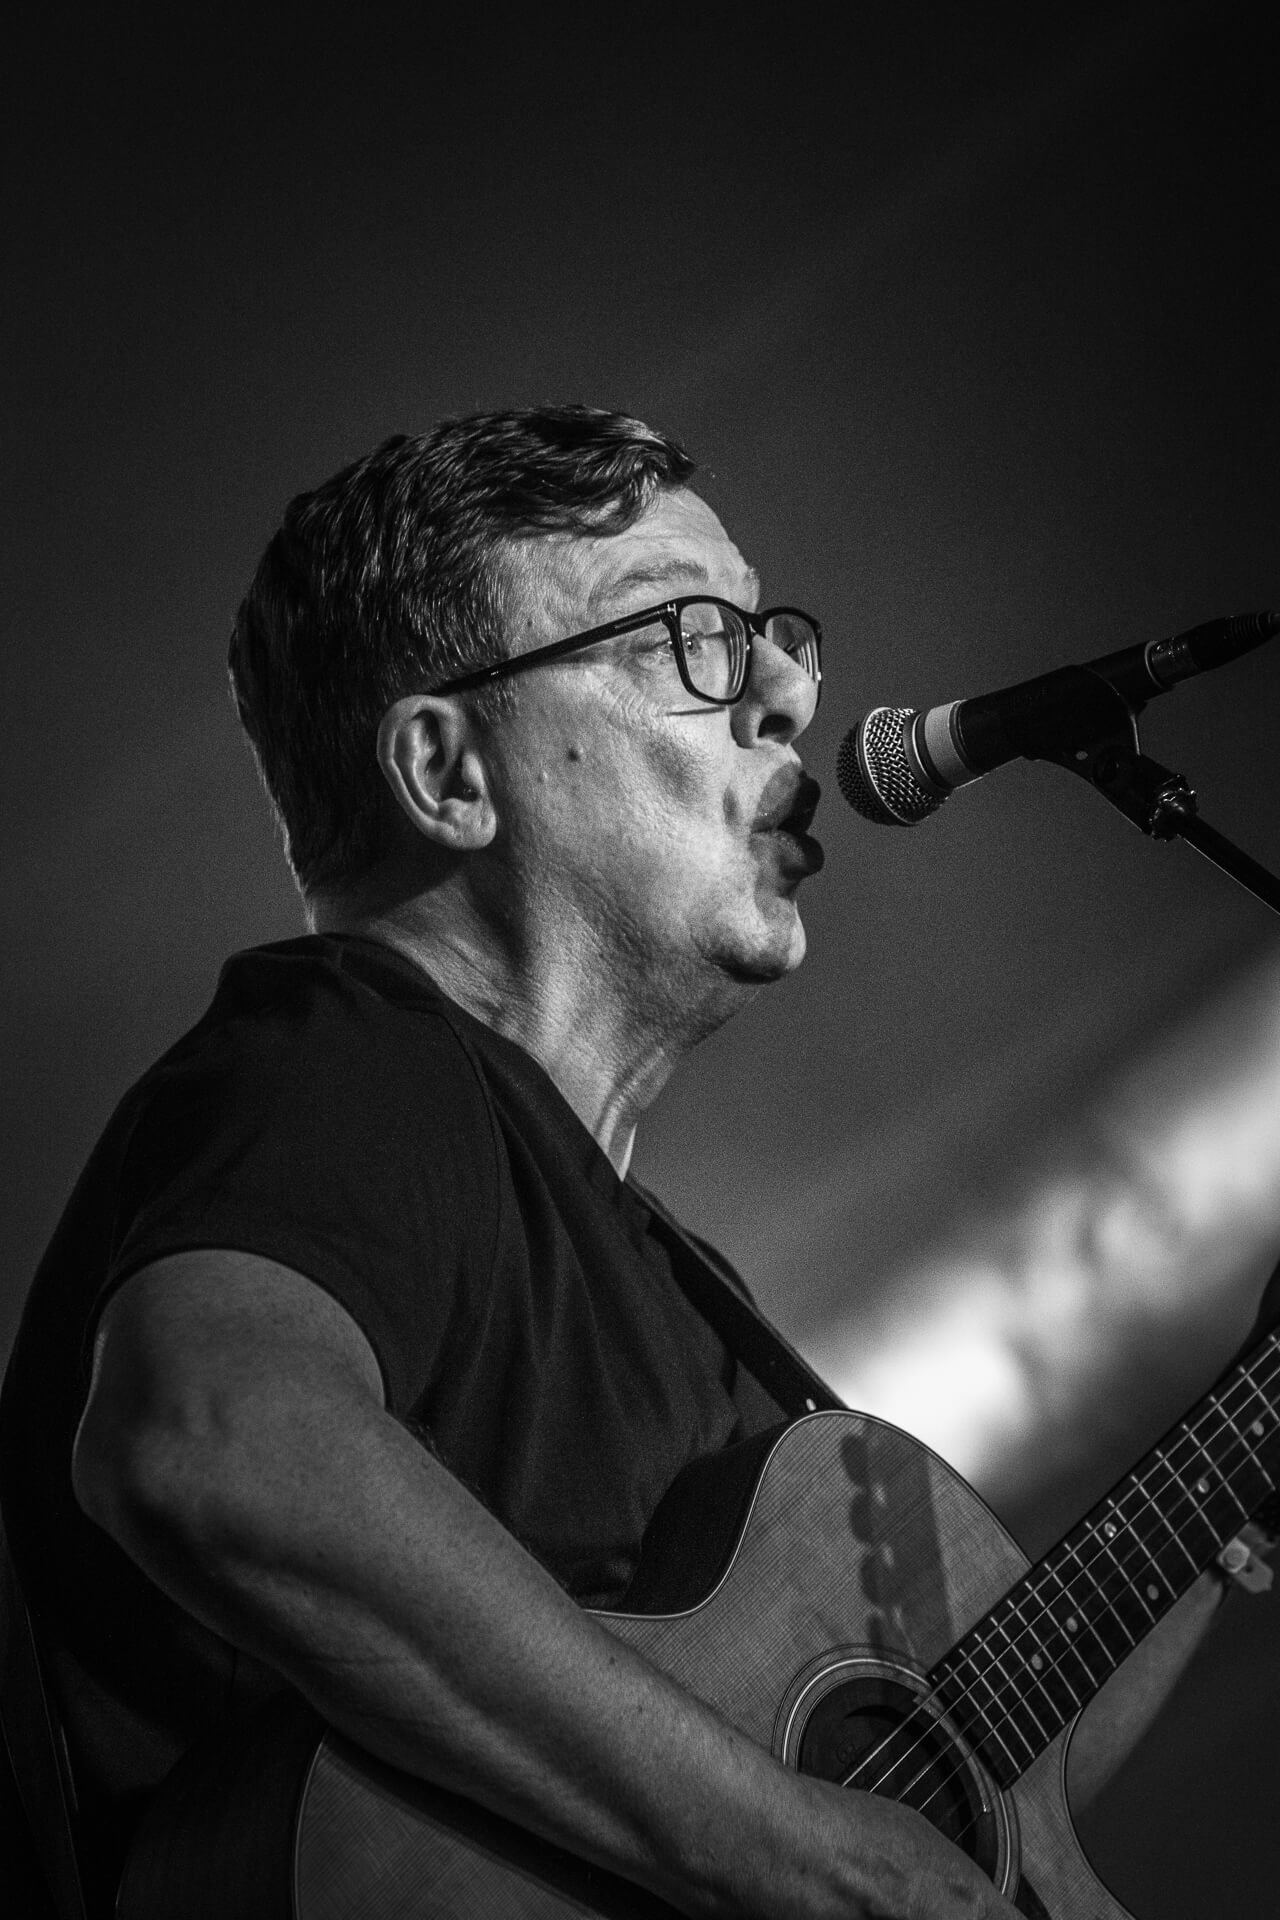 A close up B&W head & shoulders image of Craig of The Proclaimers playing guitar & singing whilst on stage at Lakefest 2019.